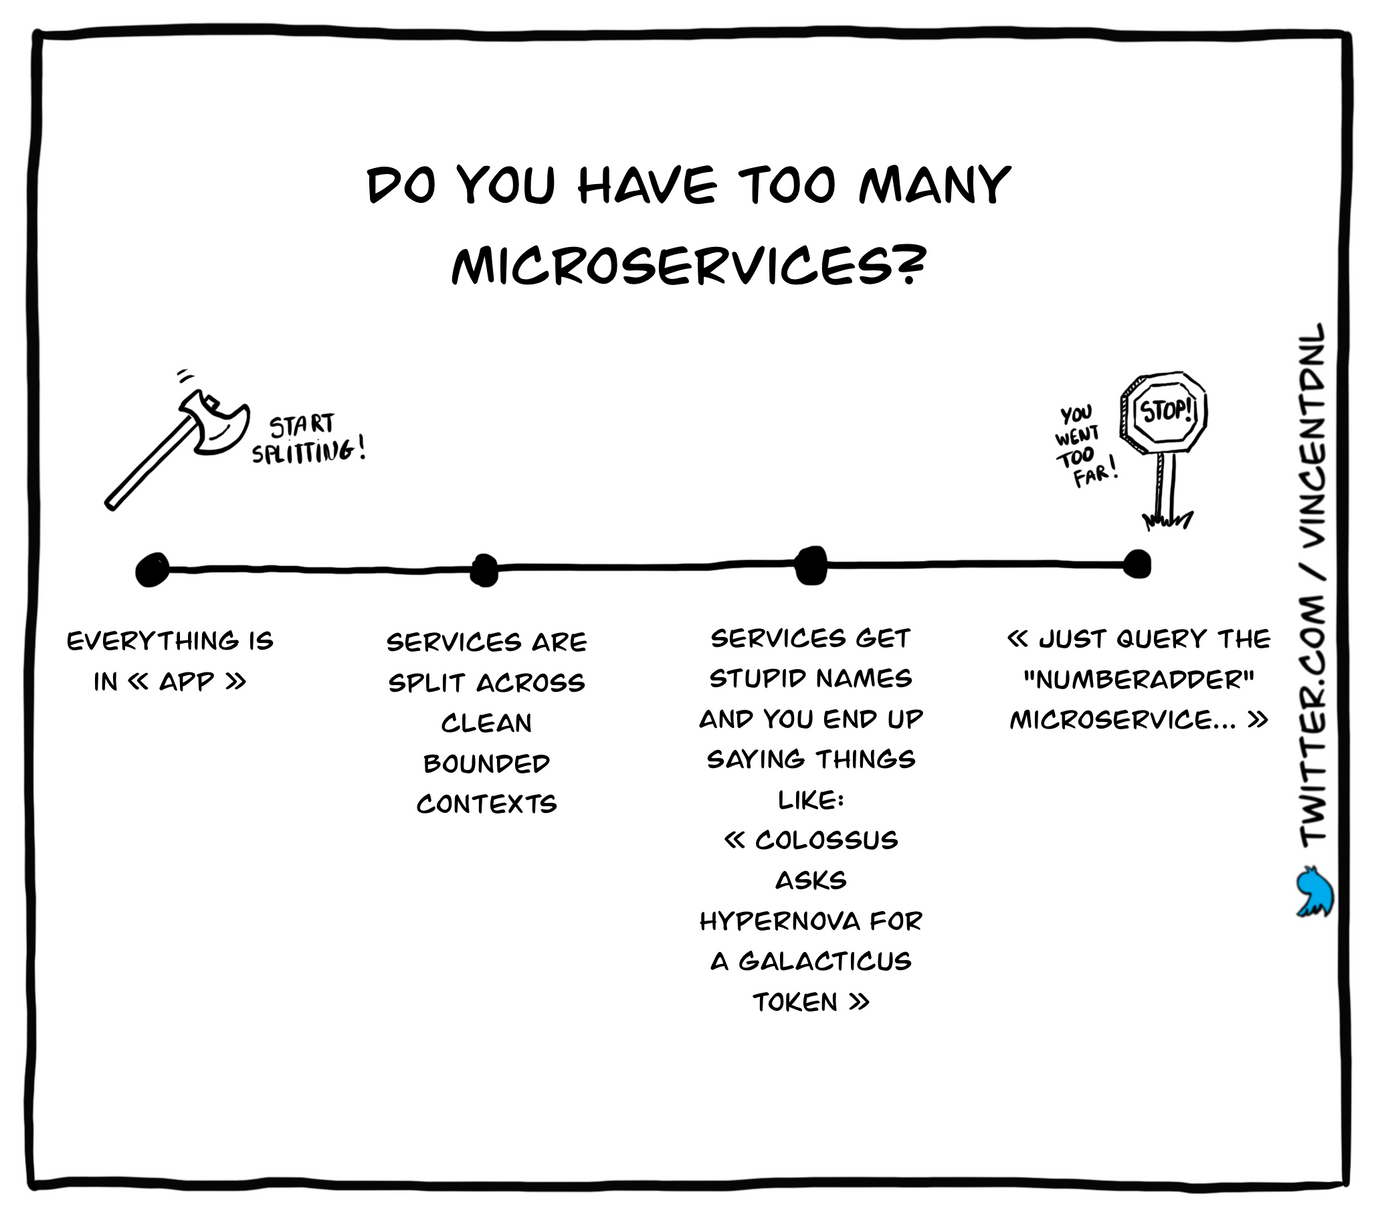 drawing - text: Do you have too many microservices? | - Everything is in app - services are split across clean bounded contexts - services get stupid names and you end up saying things like: colossus asks hypernova for a galacticus token - Just query the numberadder microservice...